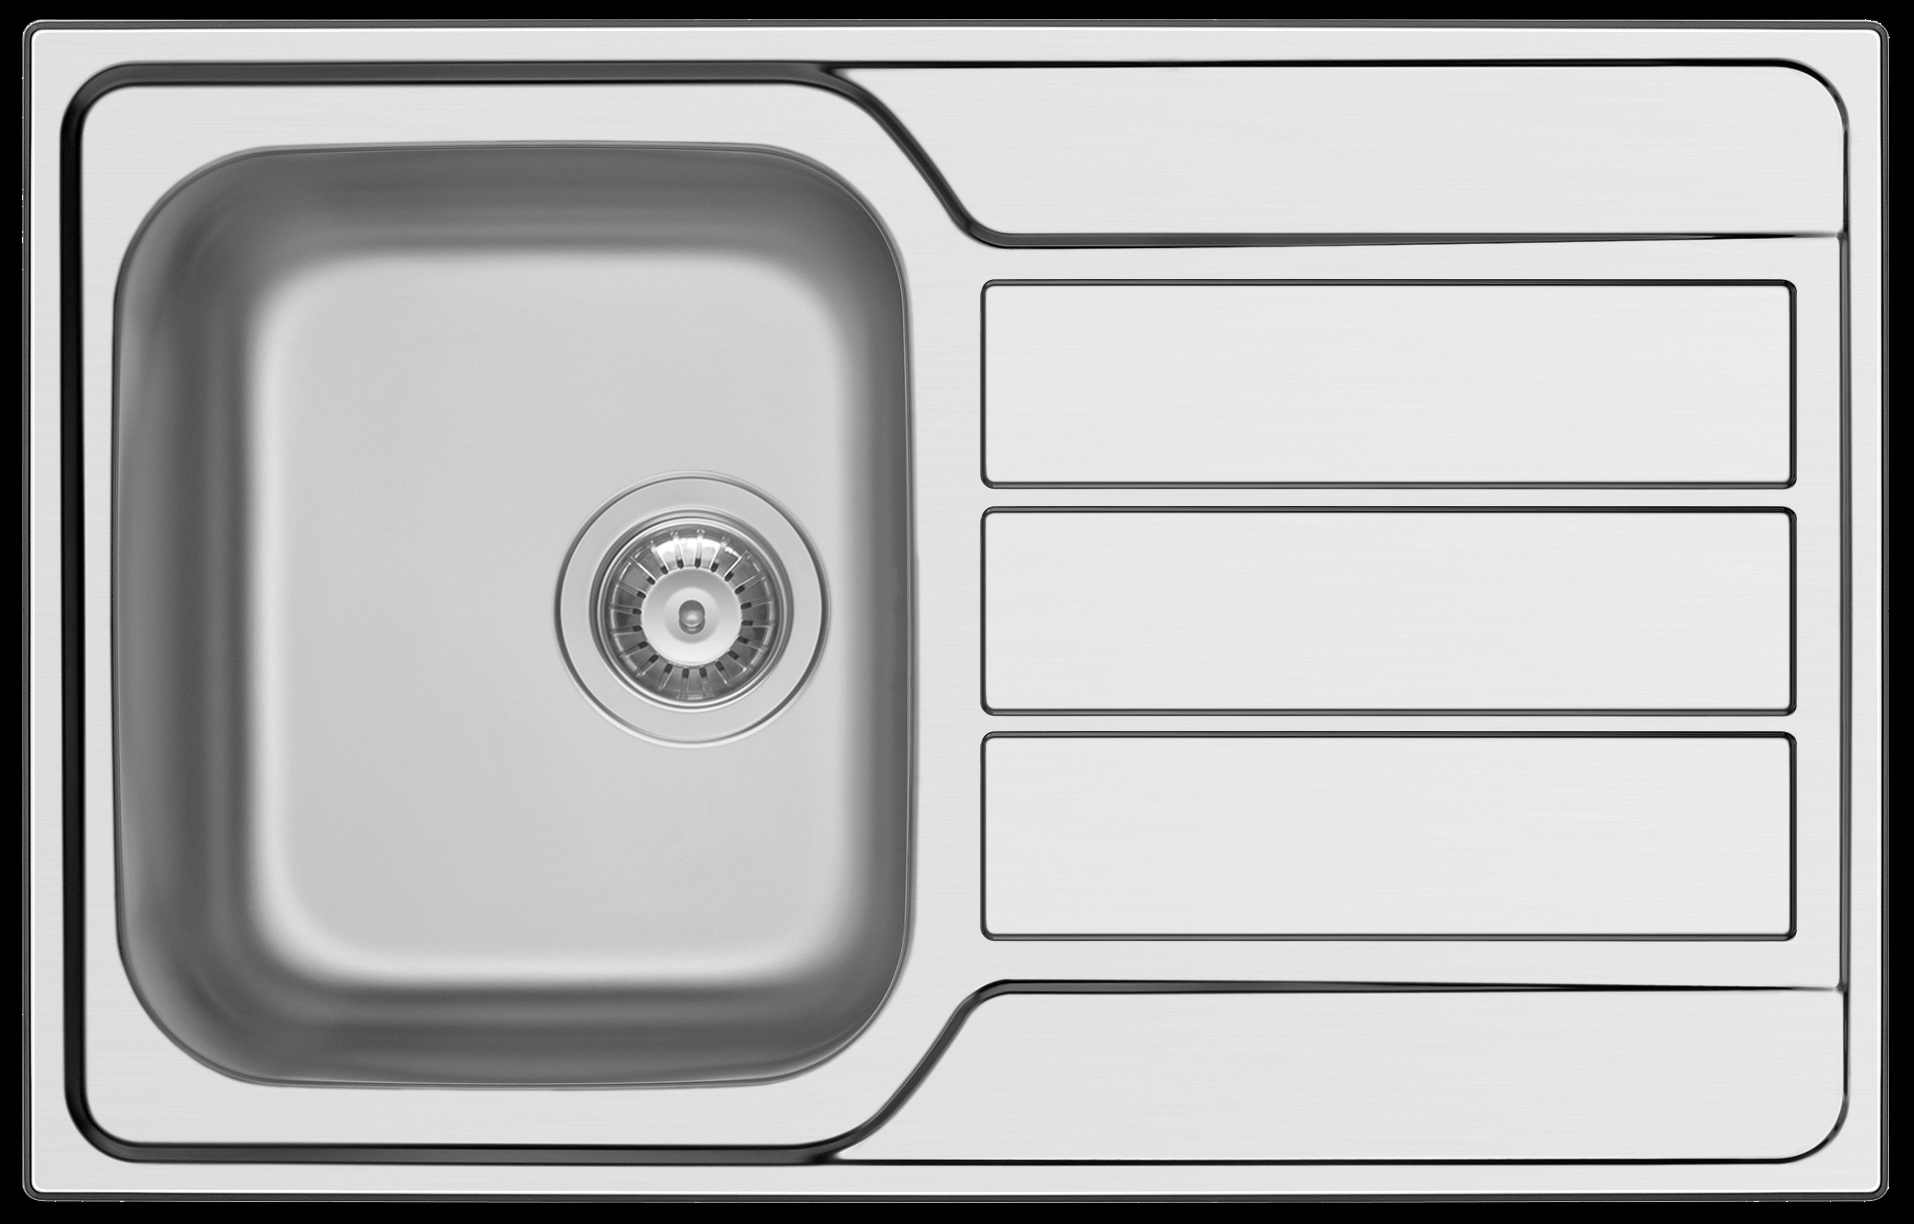 Modern small kitchen sink 790 mm left or right hand bowls